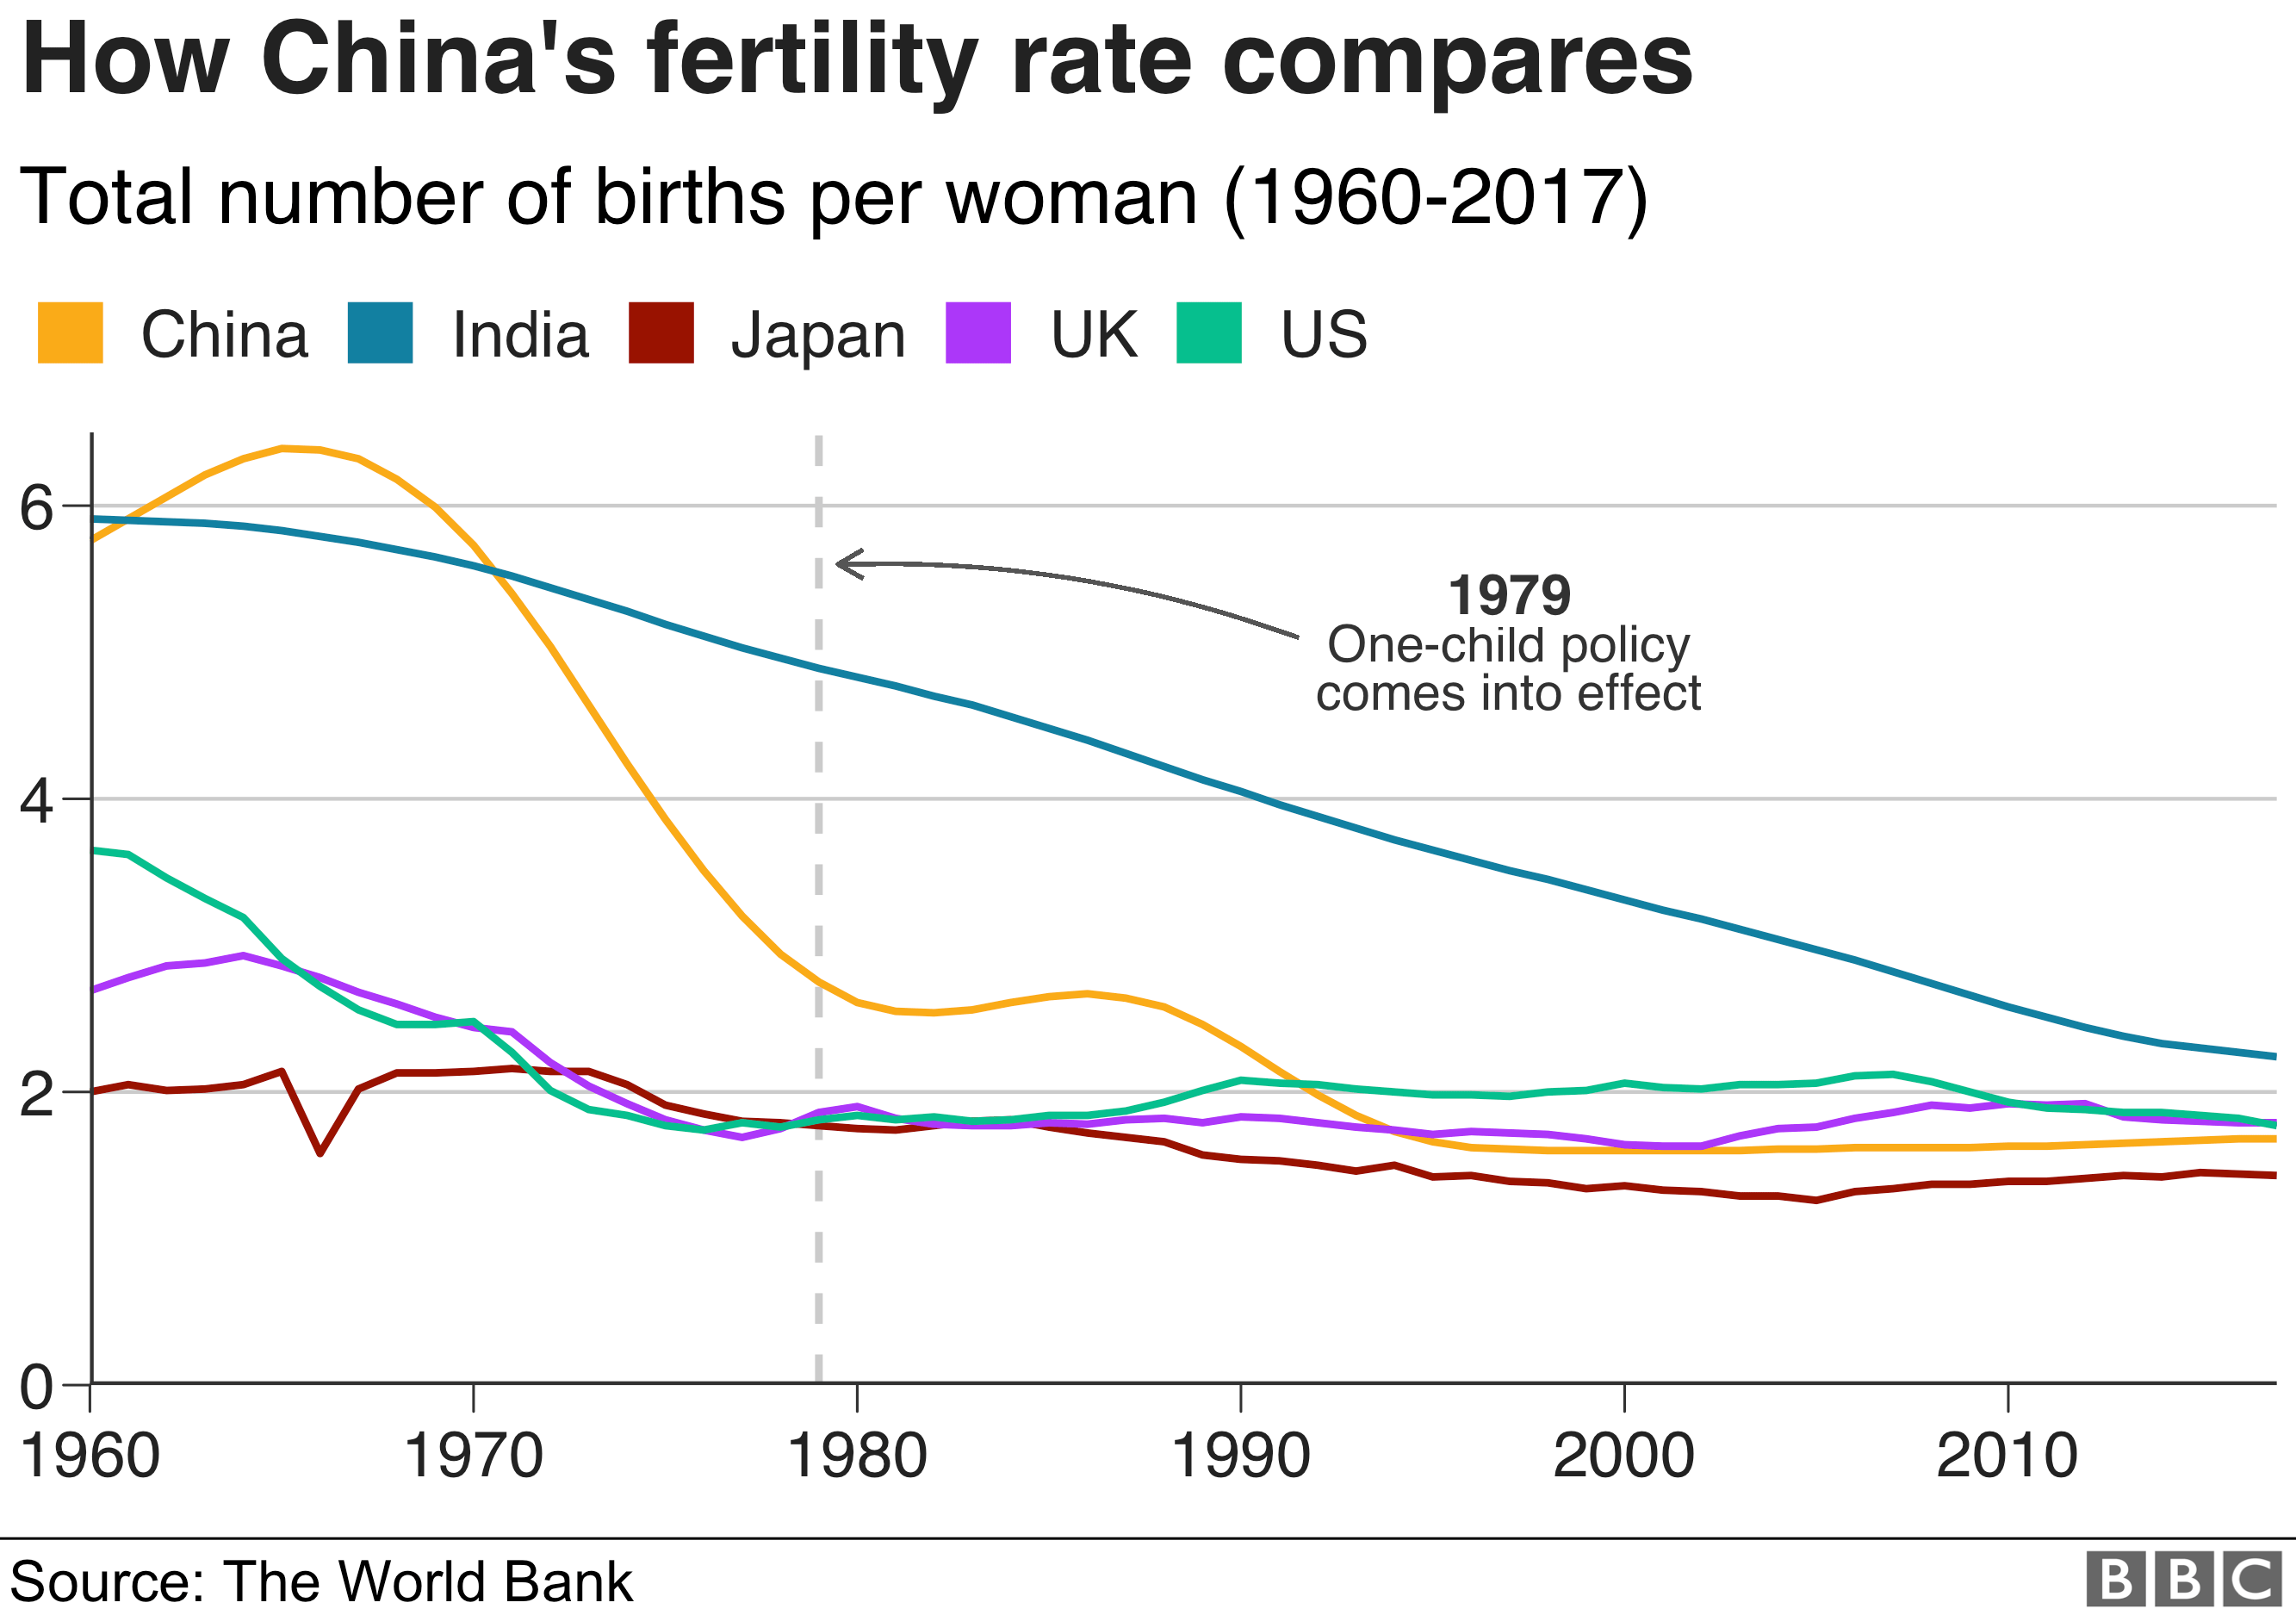 Chart showing how China's fertility rate compares to other countries